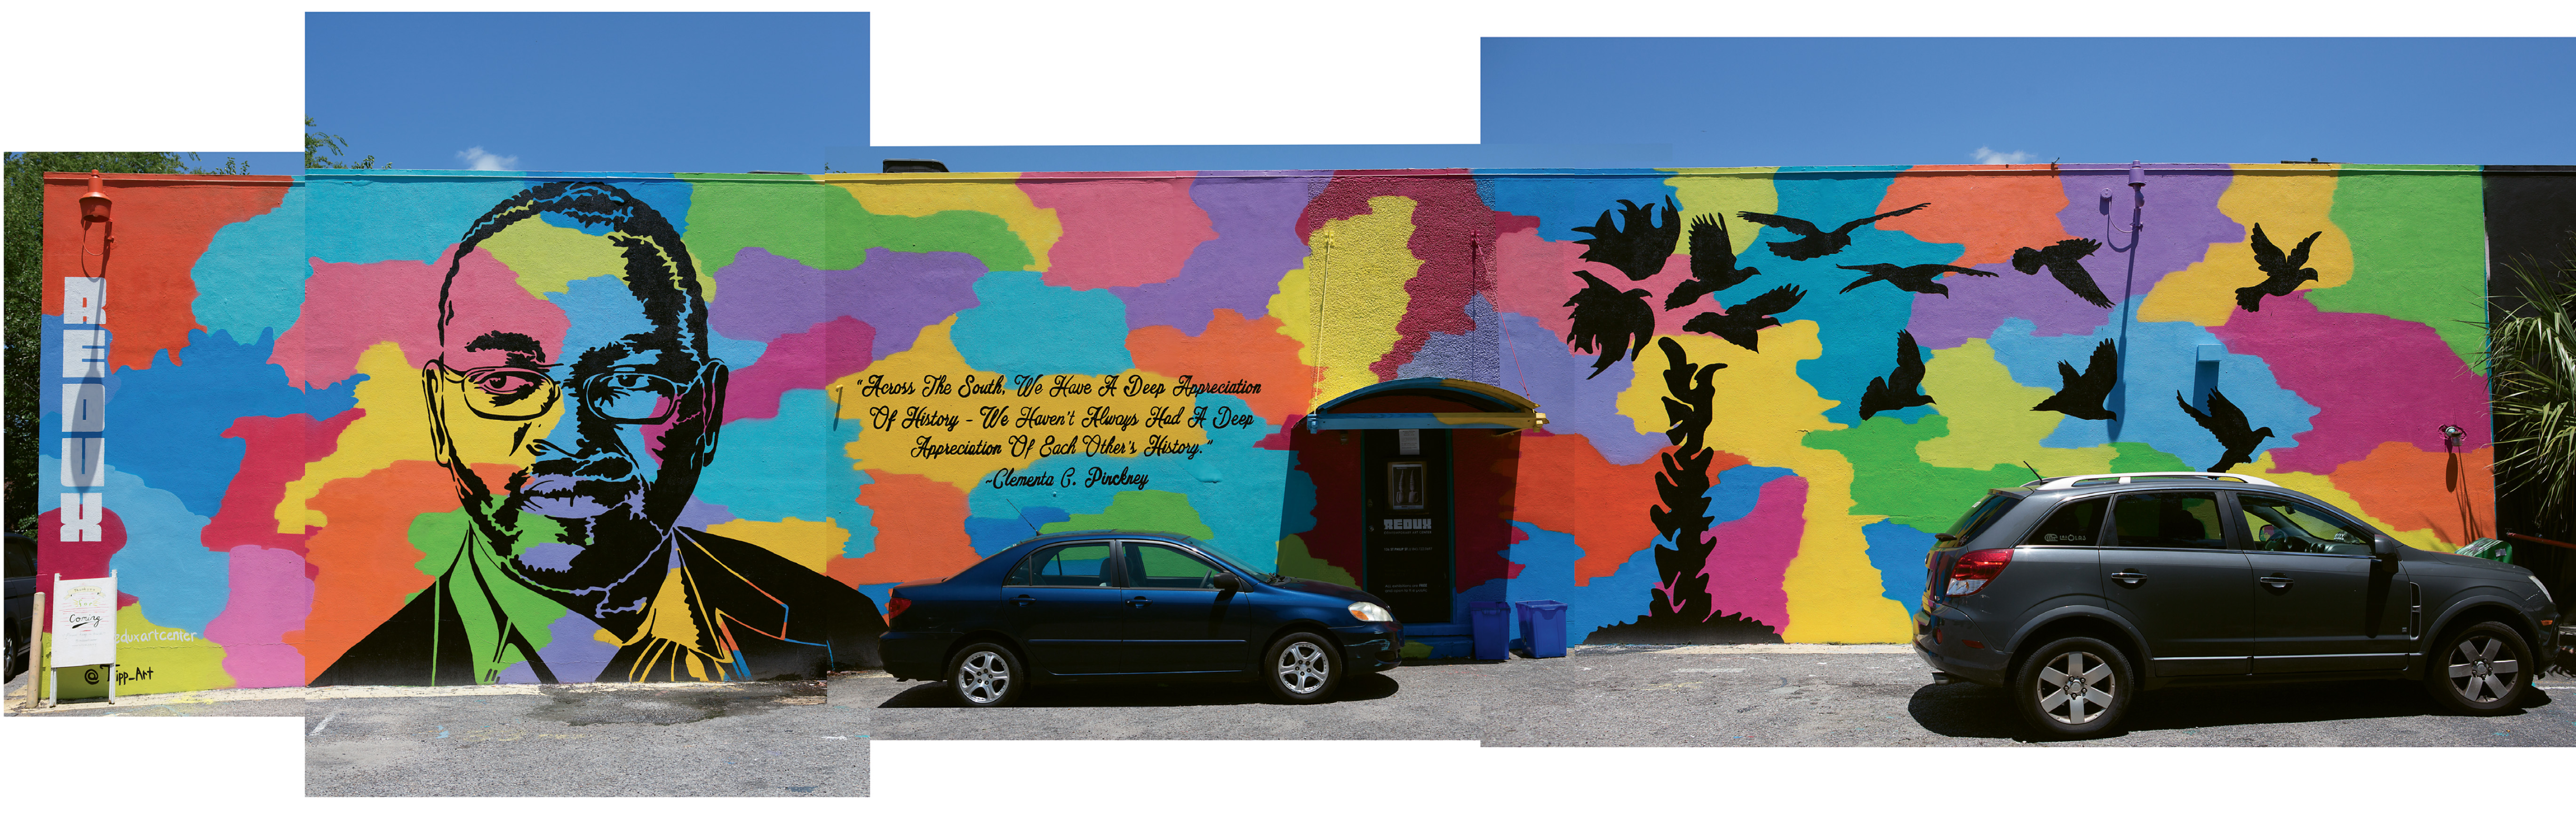 "In Remembrance  by Tripp Derrick Barnes  May 2016  Redux Contemporary Art Center (136 St. Philip St.)  Working with a team of artists, the Columbia native painted this mural in his ""PopNeoism"" style to honor the Rev. Clementa Pinckney and the Emanuel AME church parishioners killed during Bible study on June 17, 2015."